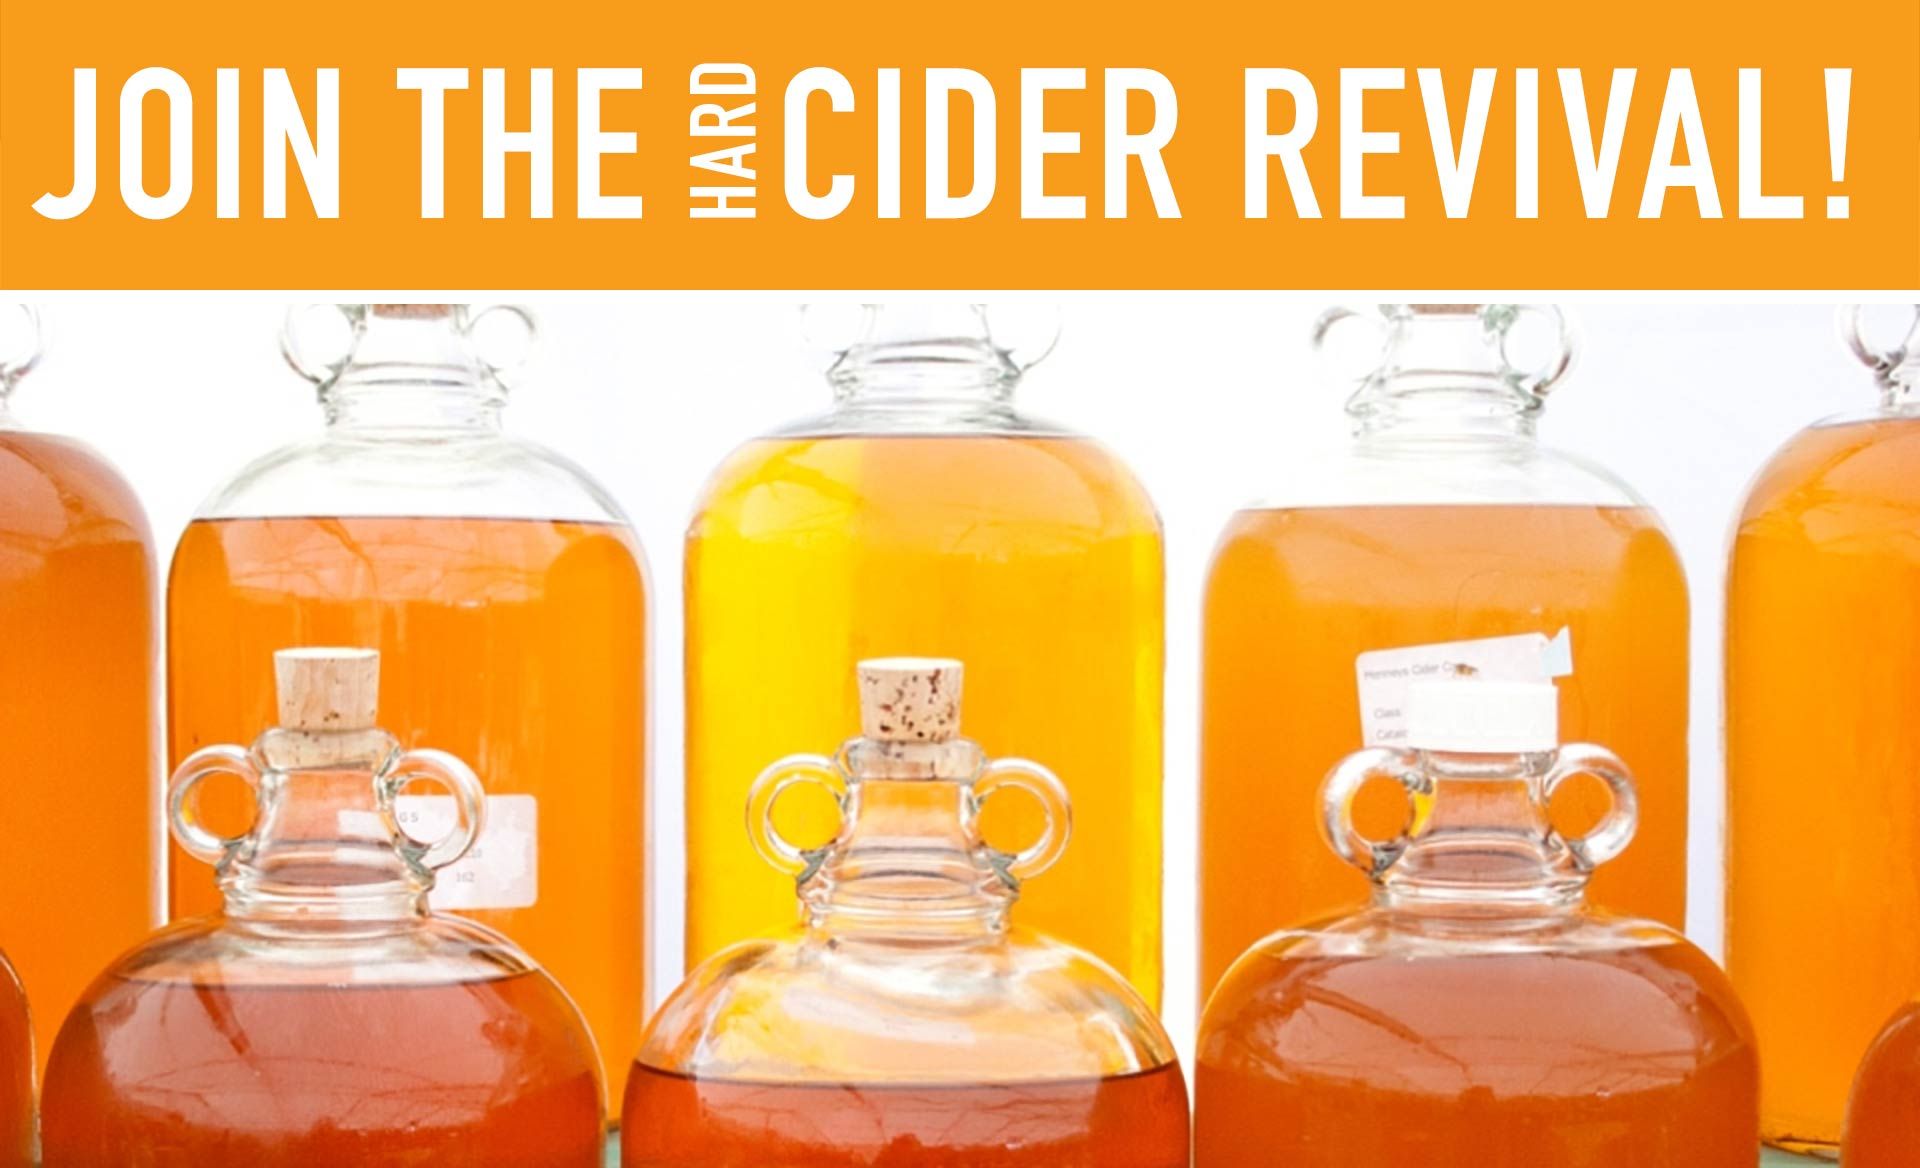 Join the Hard Cider Revival